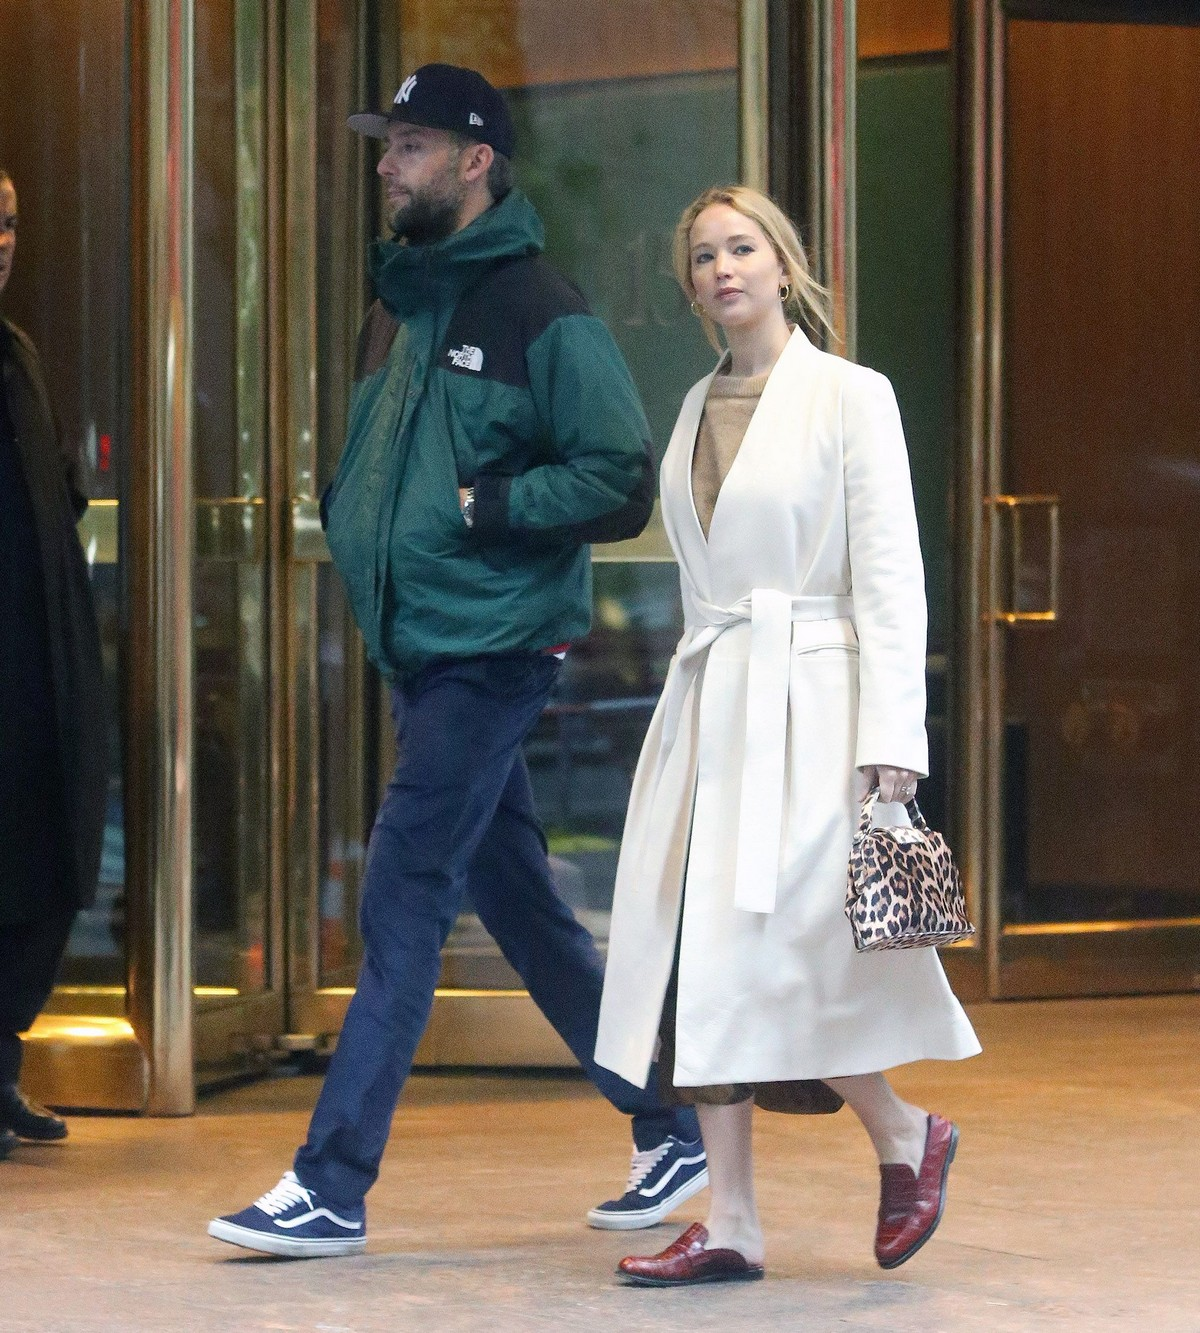 Jennifer Lawrence and Cooke Maroney leaves at MOMA to a restaurant in SOHO 2019/11/18 1